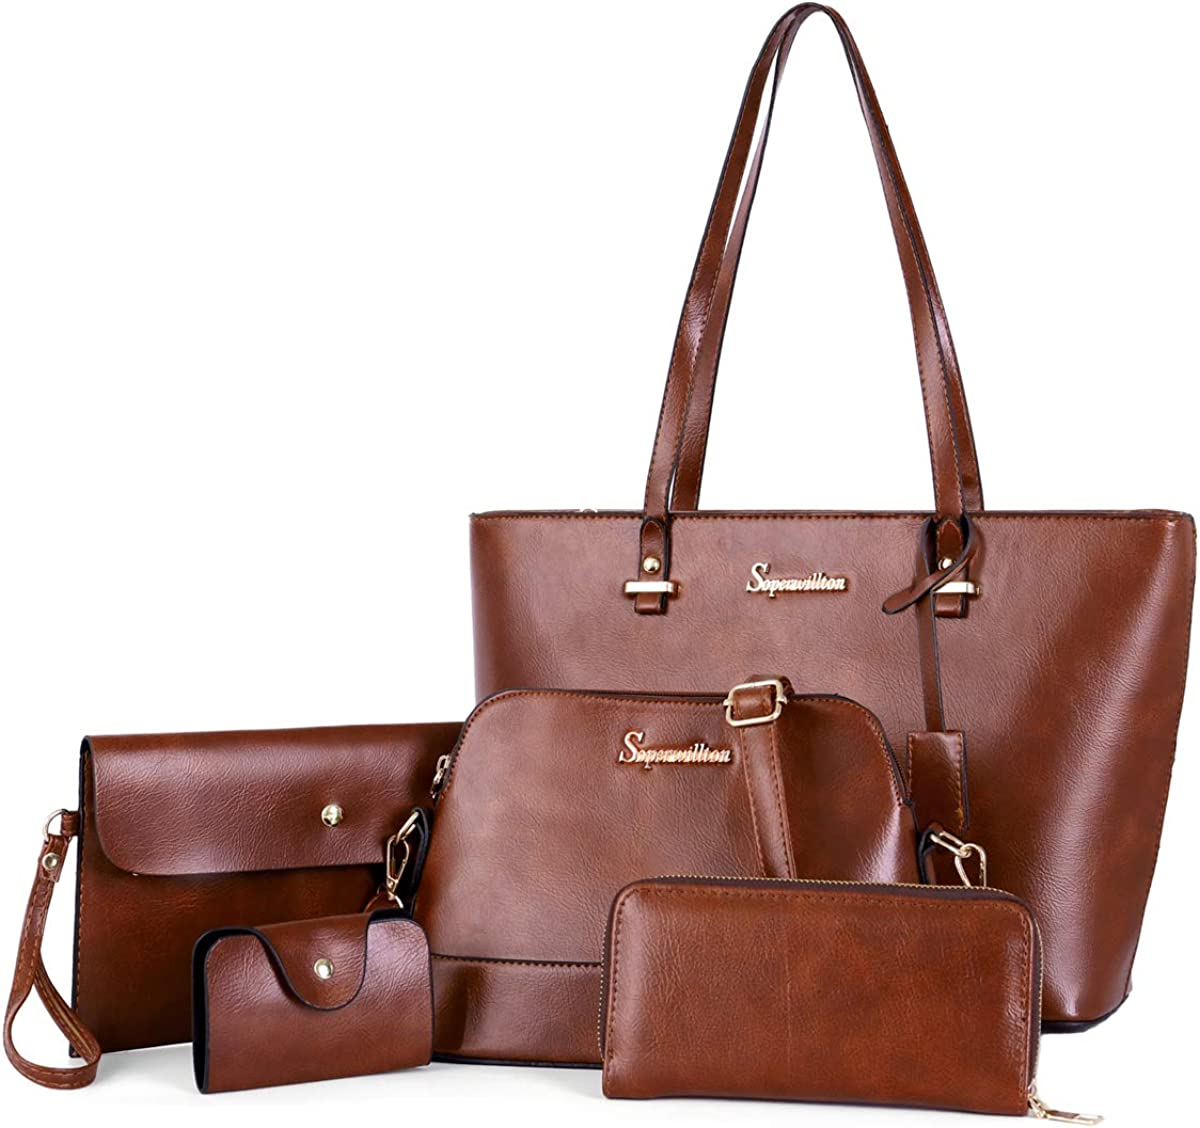 Soperwillton Handbag Set...